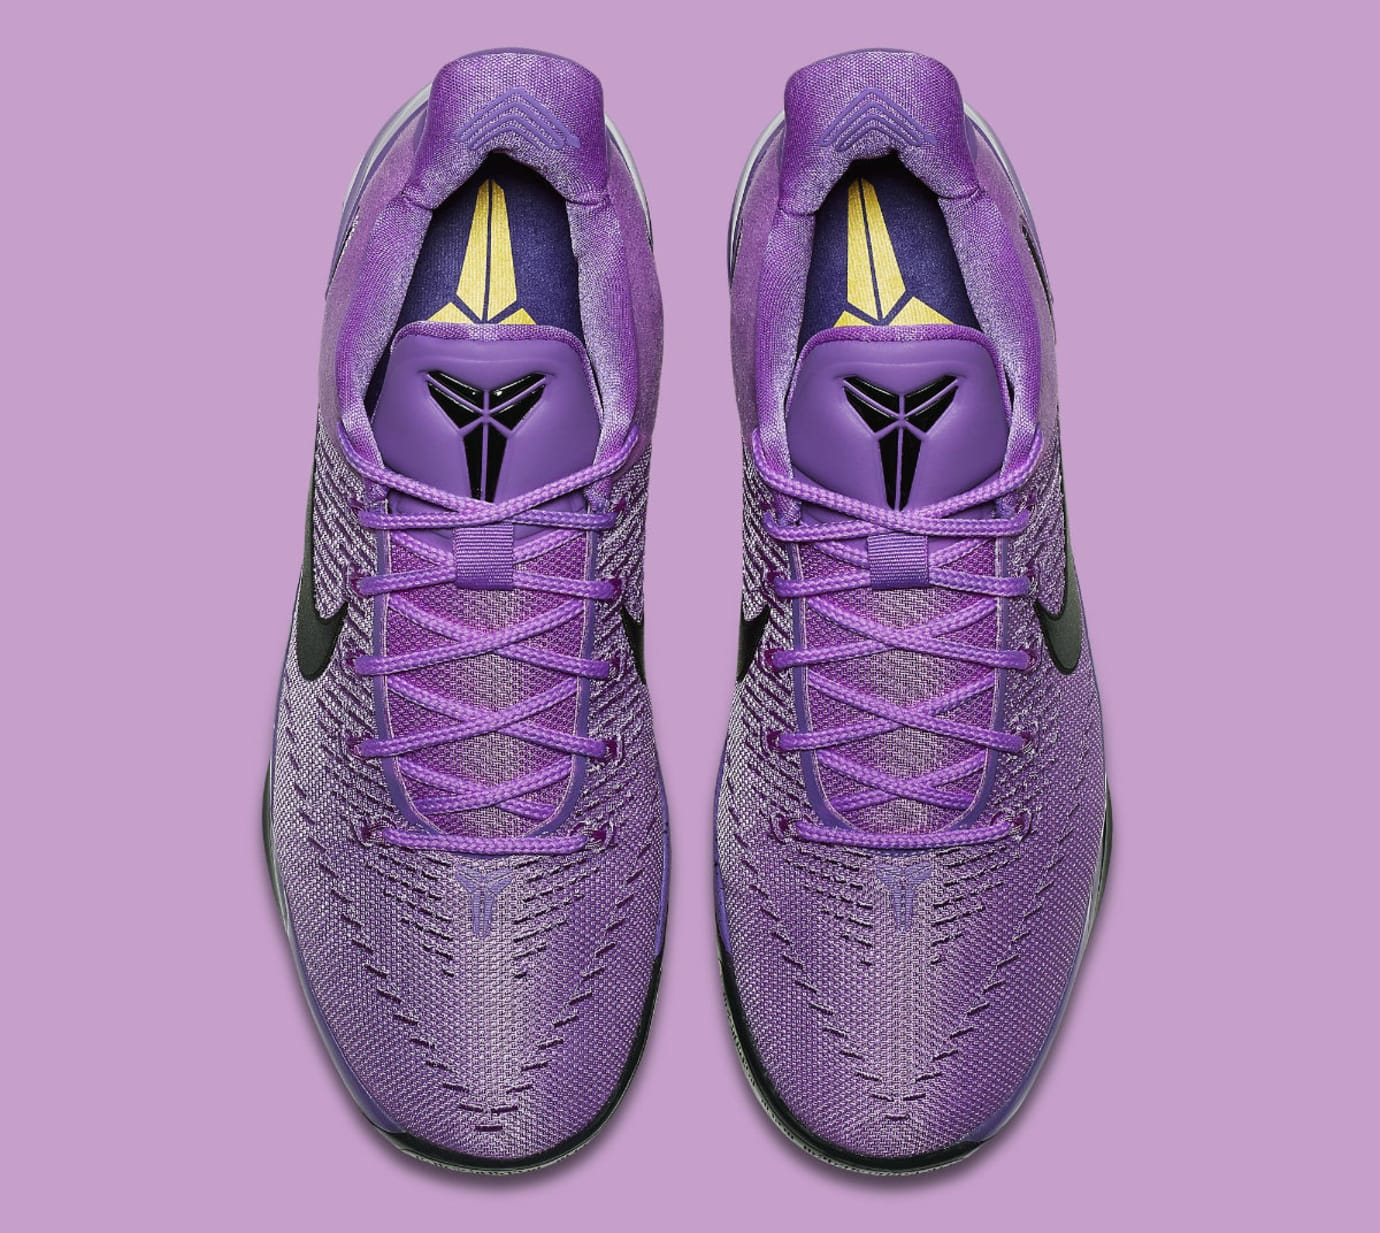 Nike Kobe A.D. Purple Stardust Lakers Release Date Top 852427-500